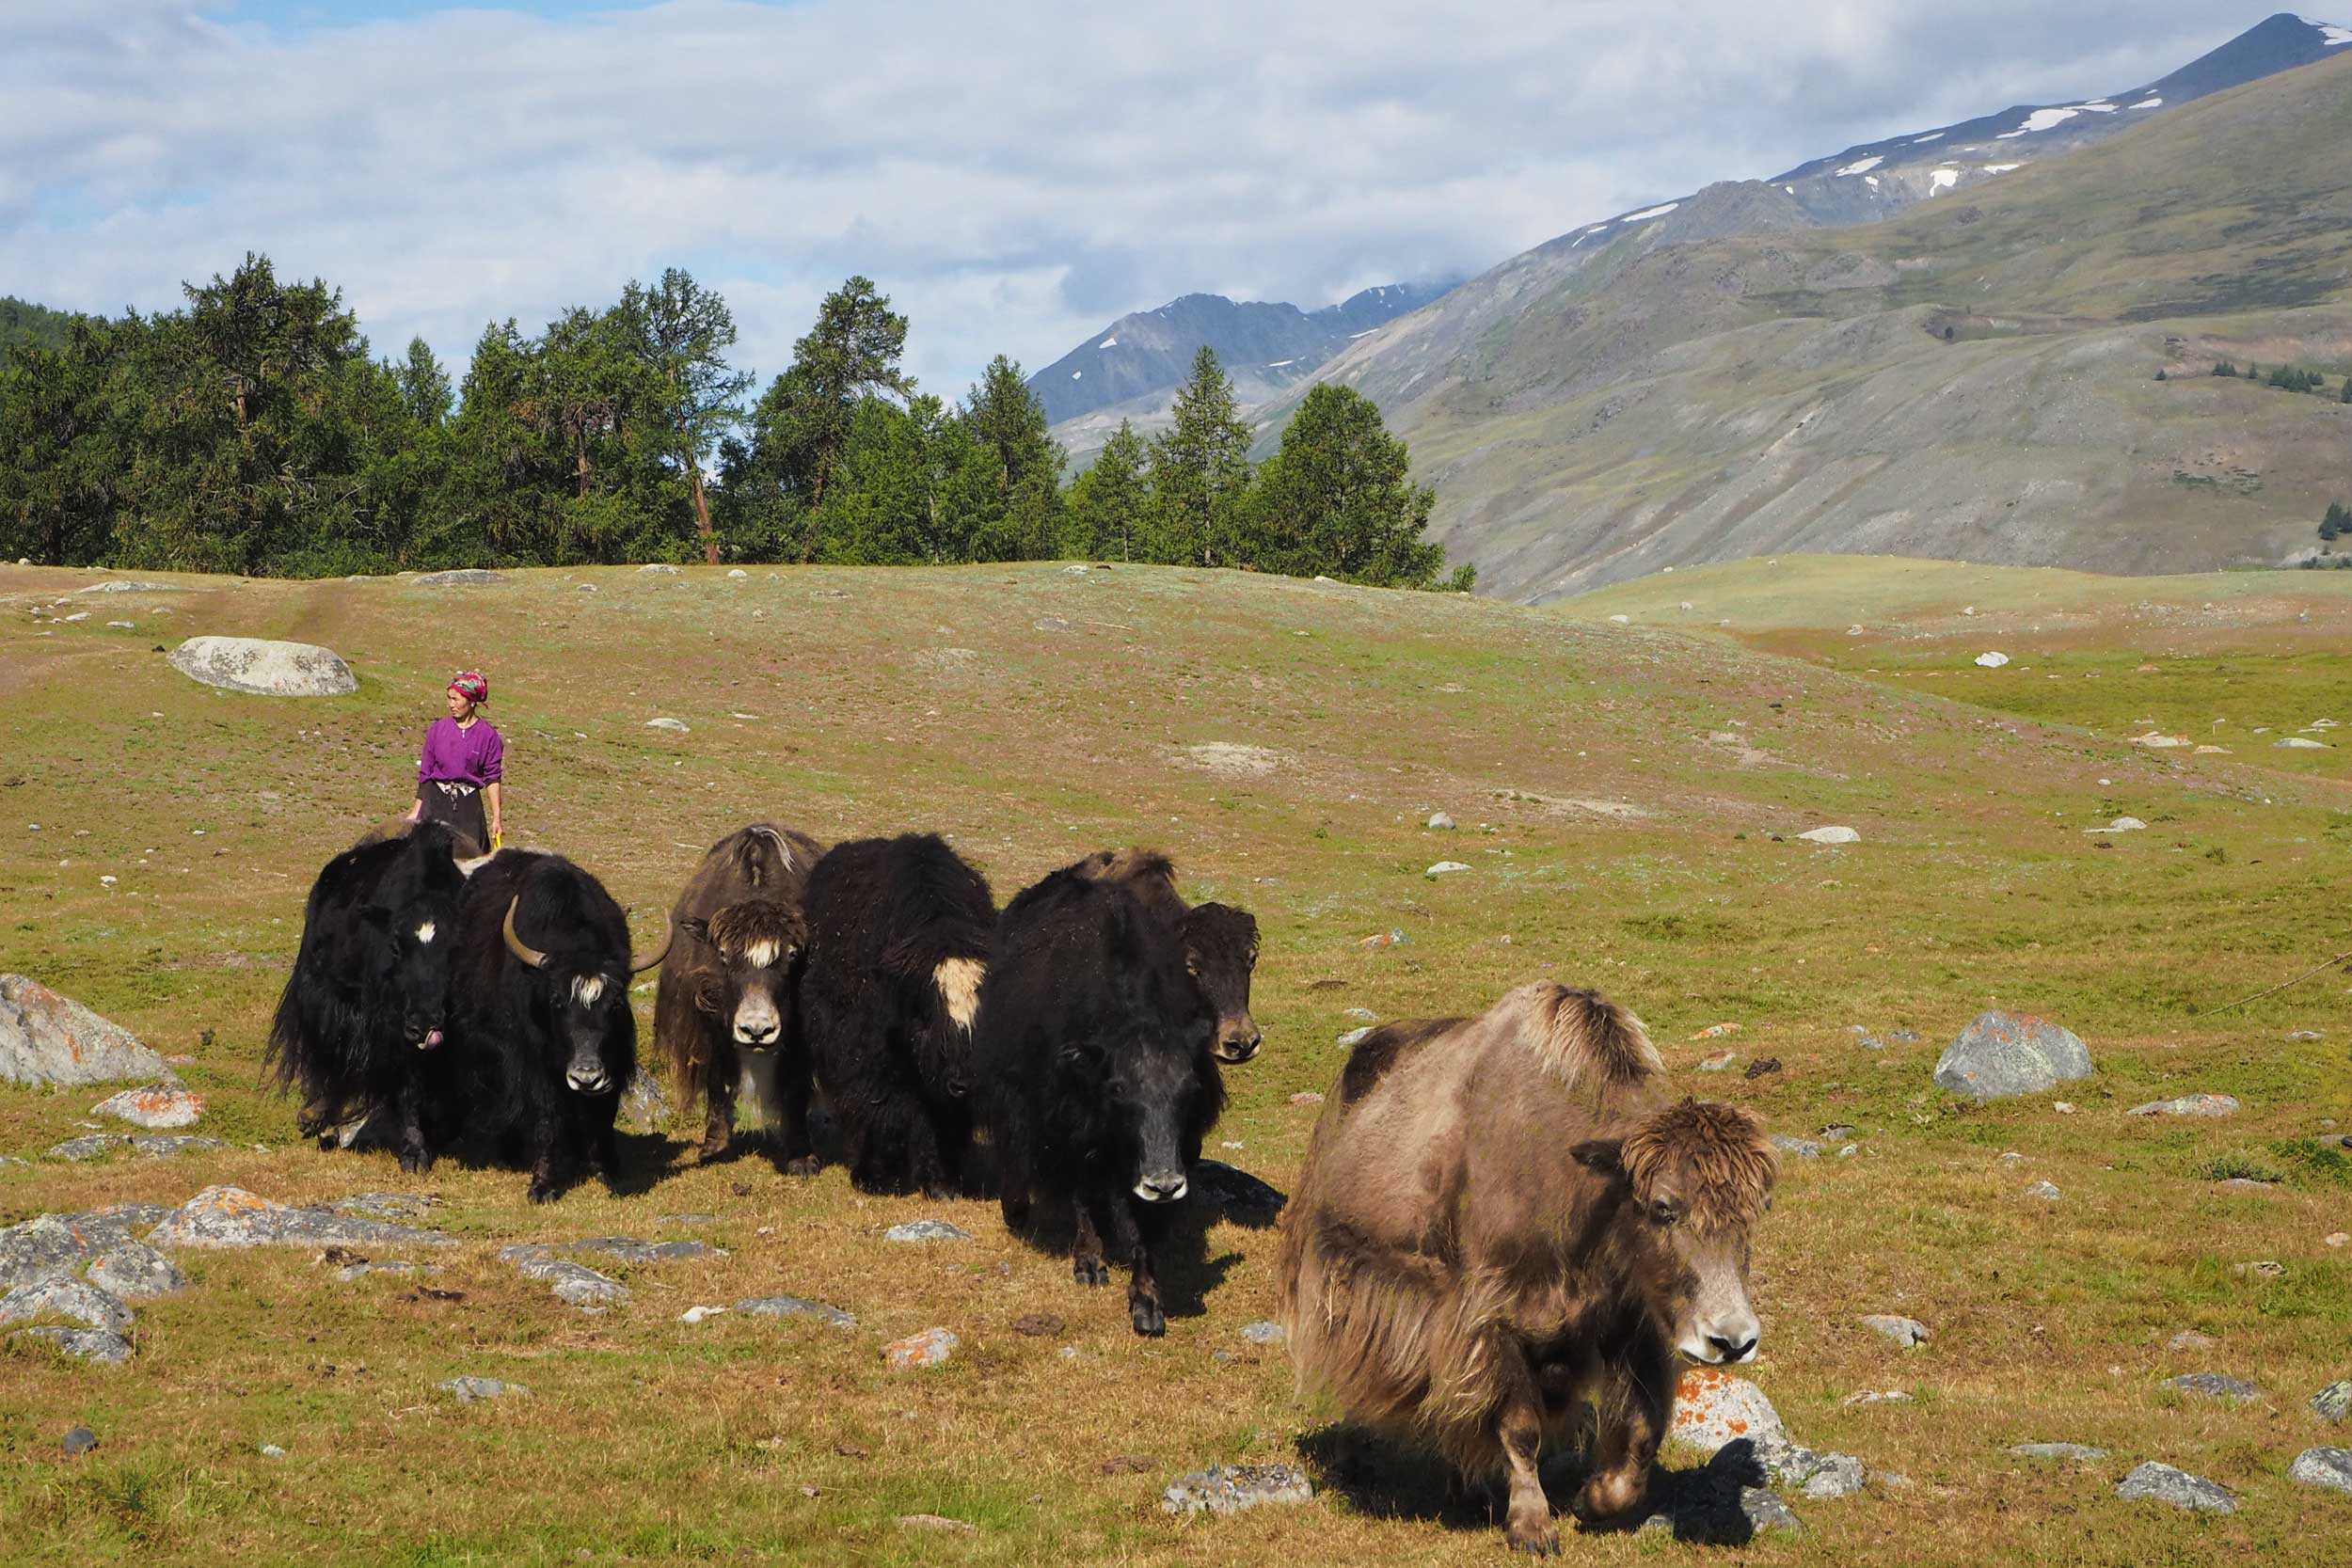 Group of yaks with a herder, Mongolia